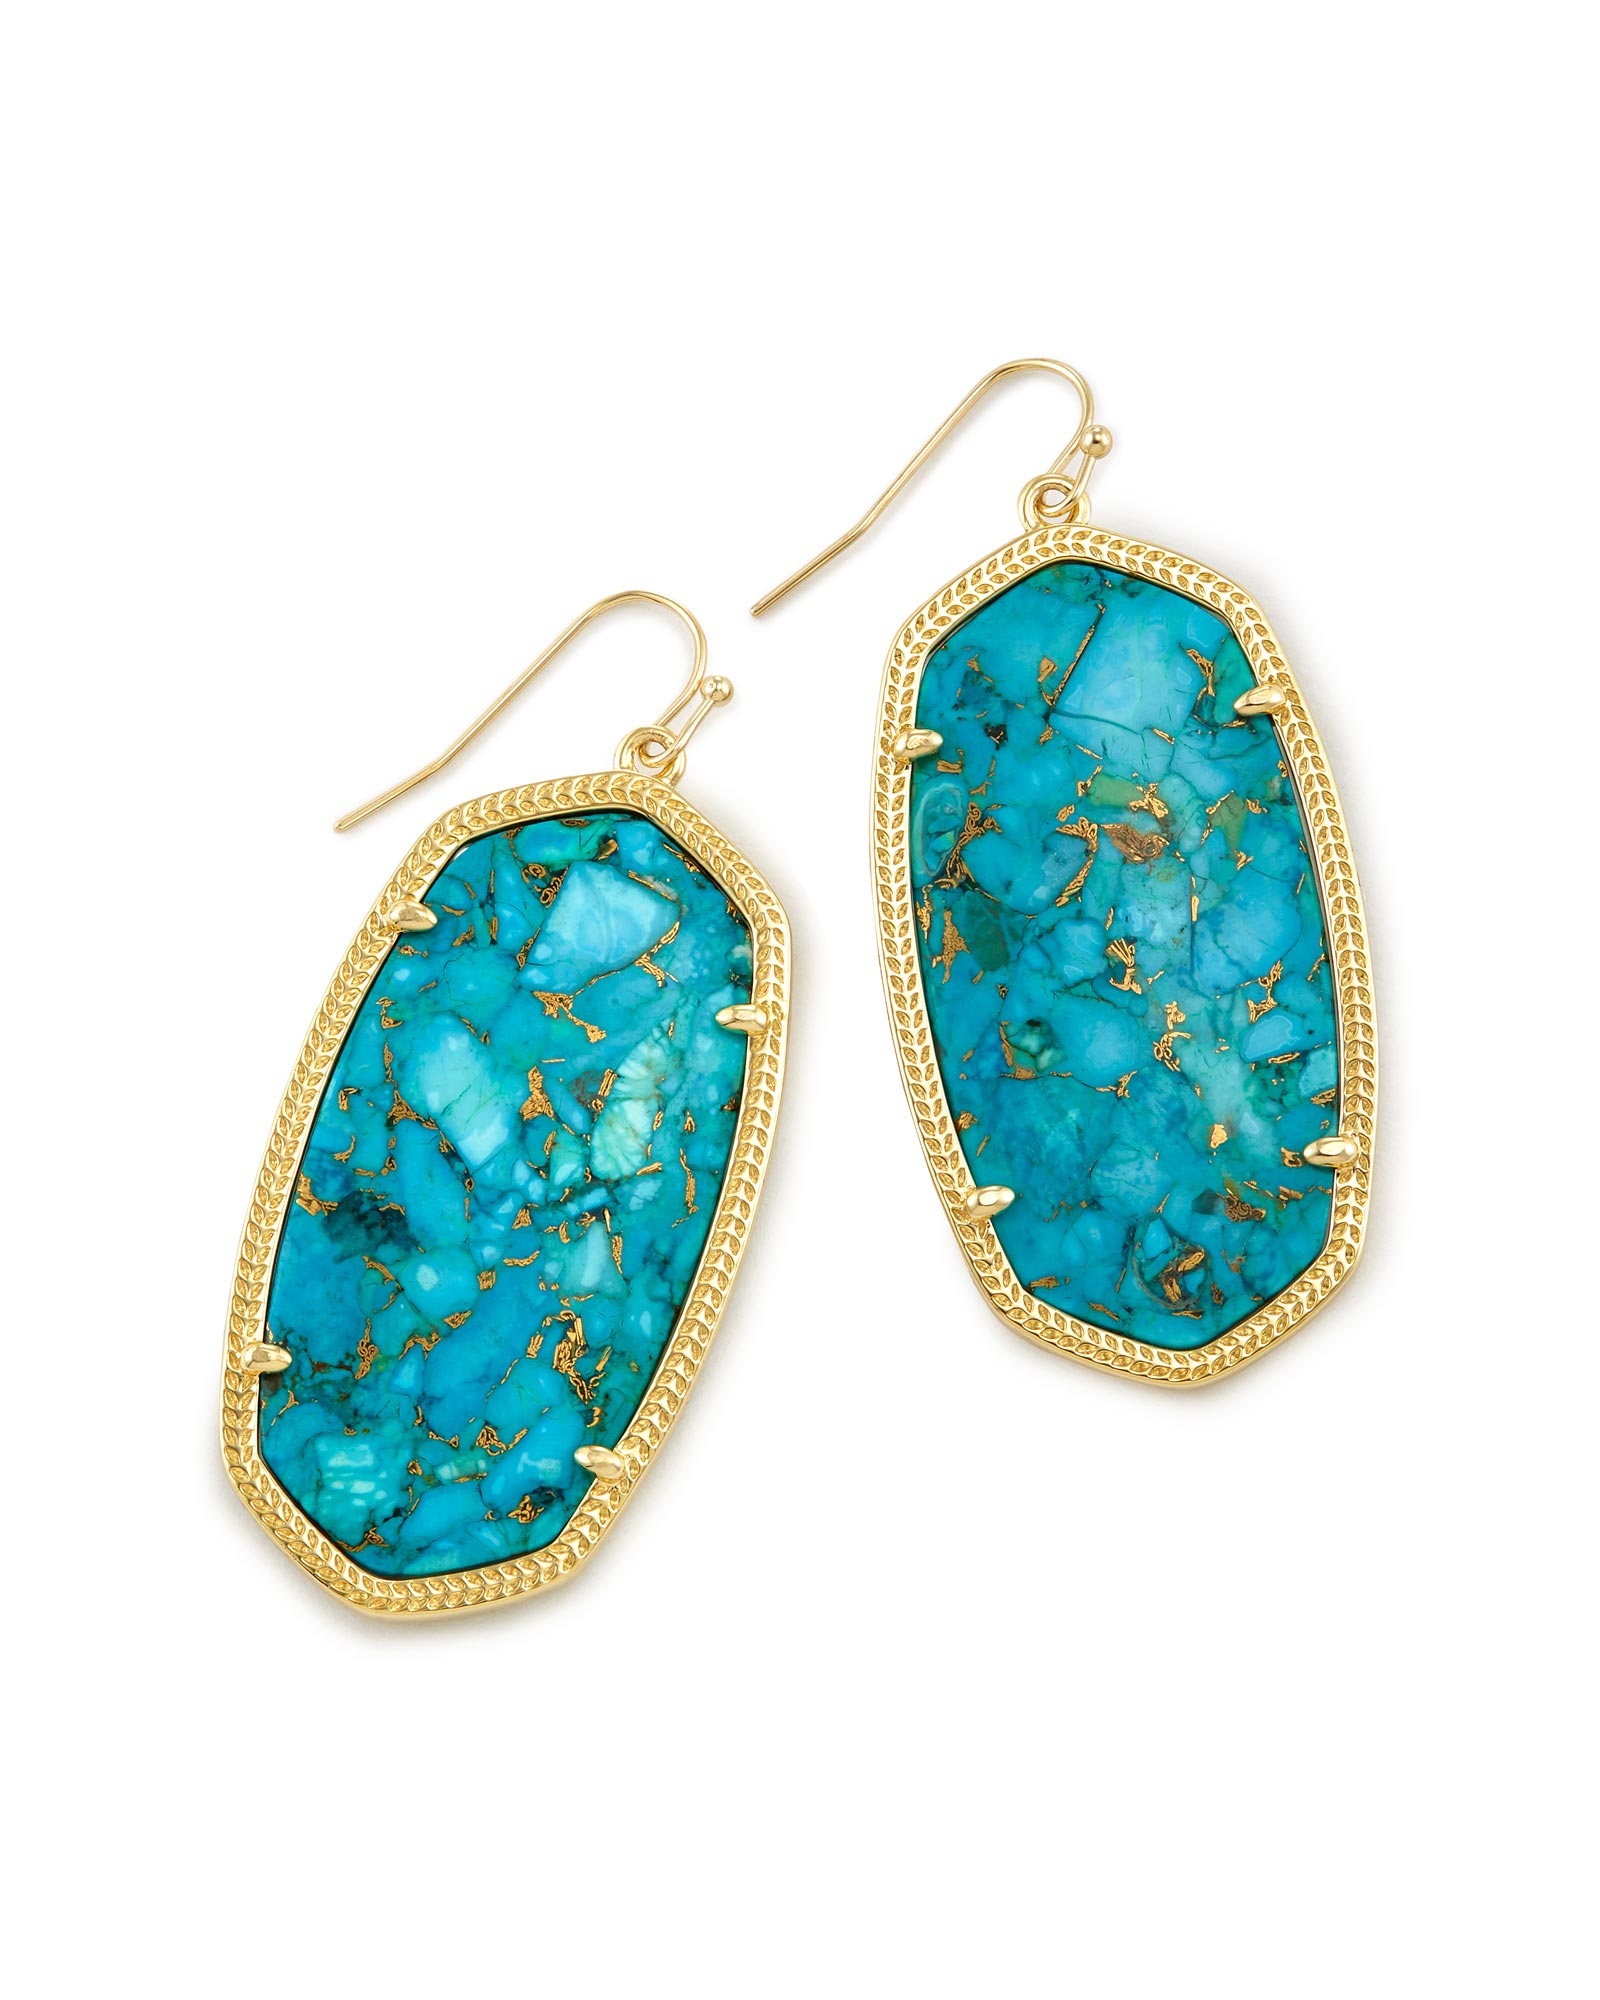 Danielle Statement Earrings in Bronze Veined Turquoise